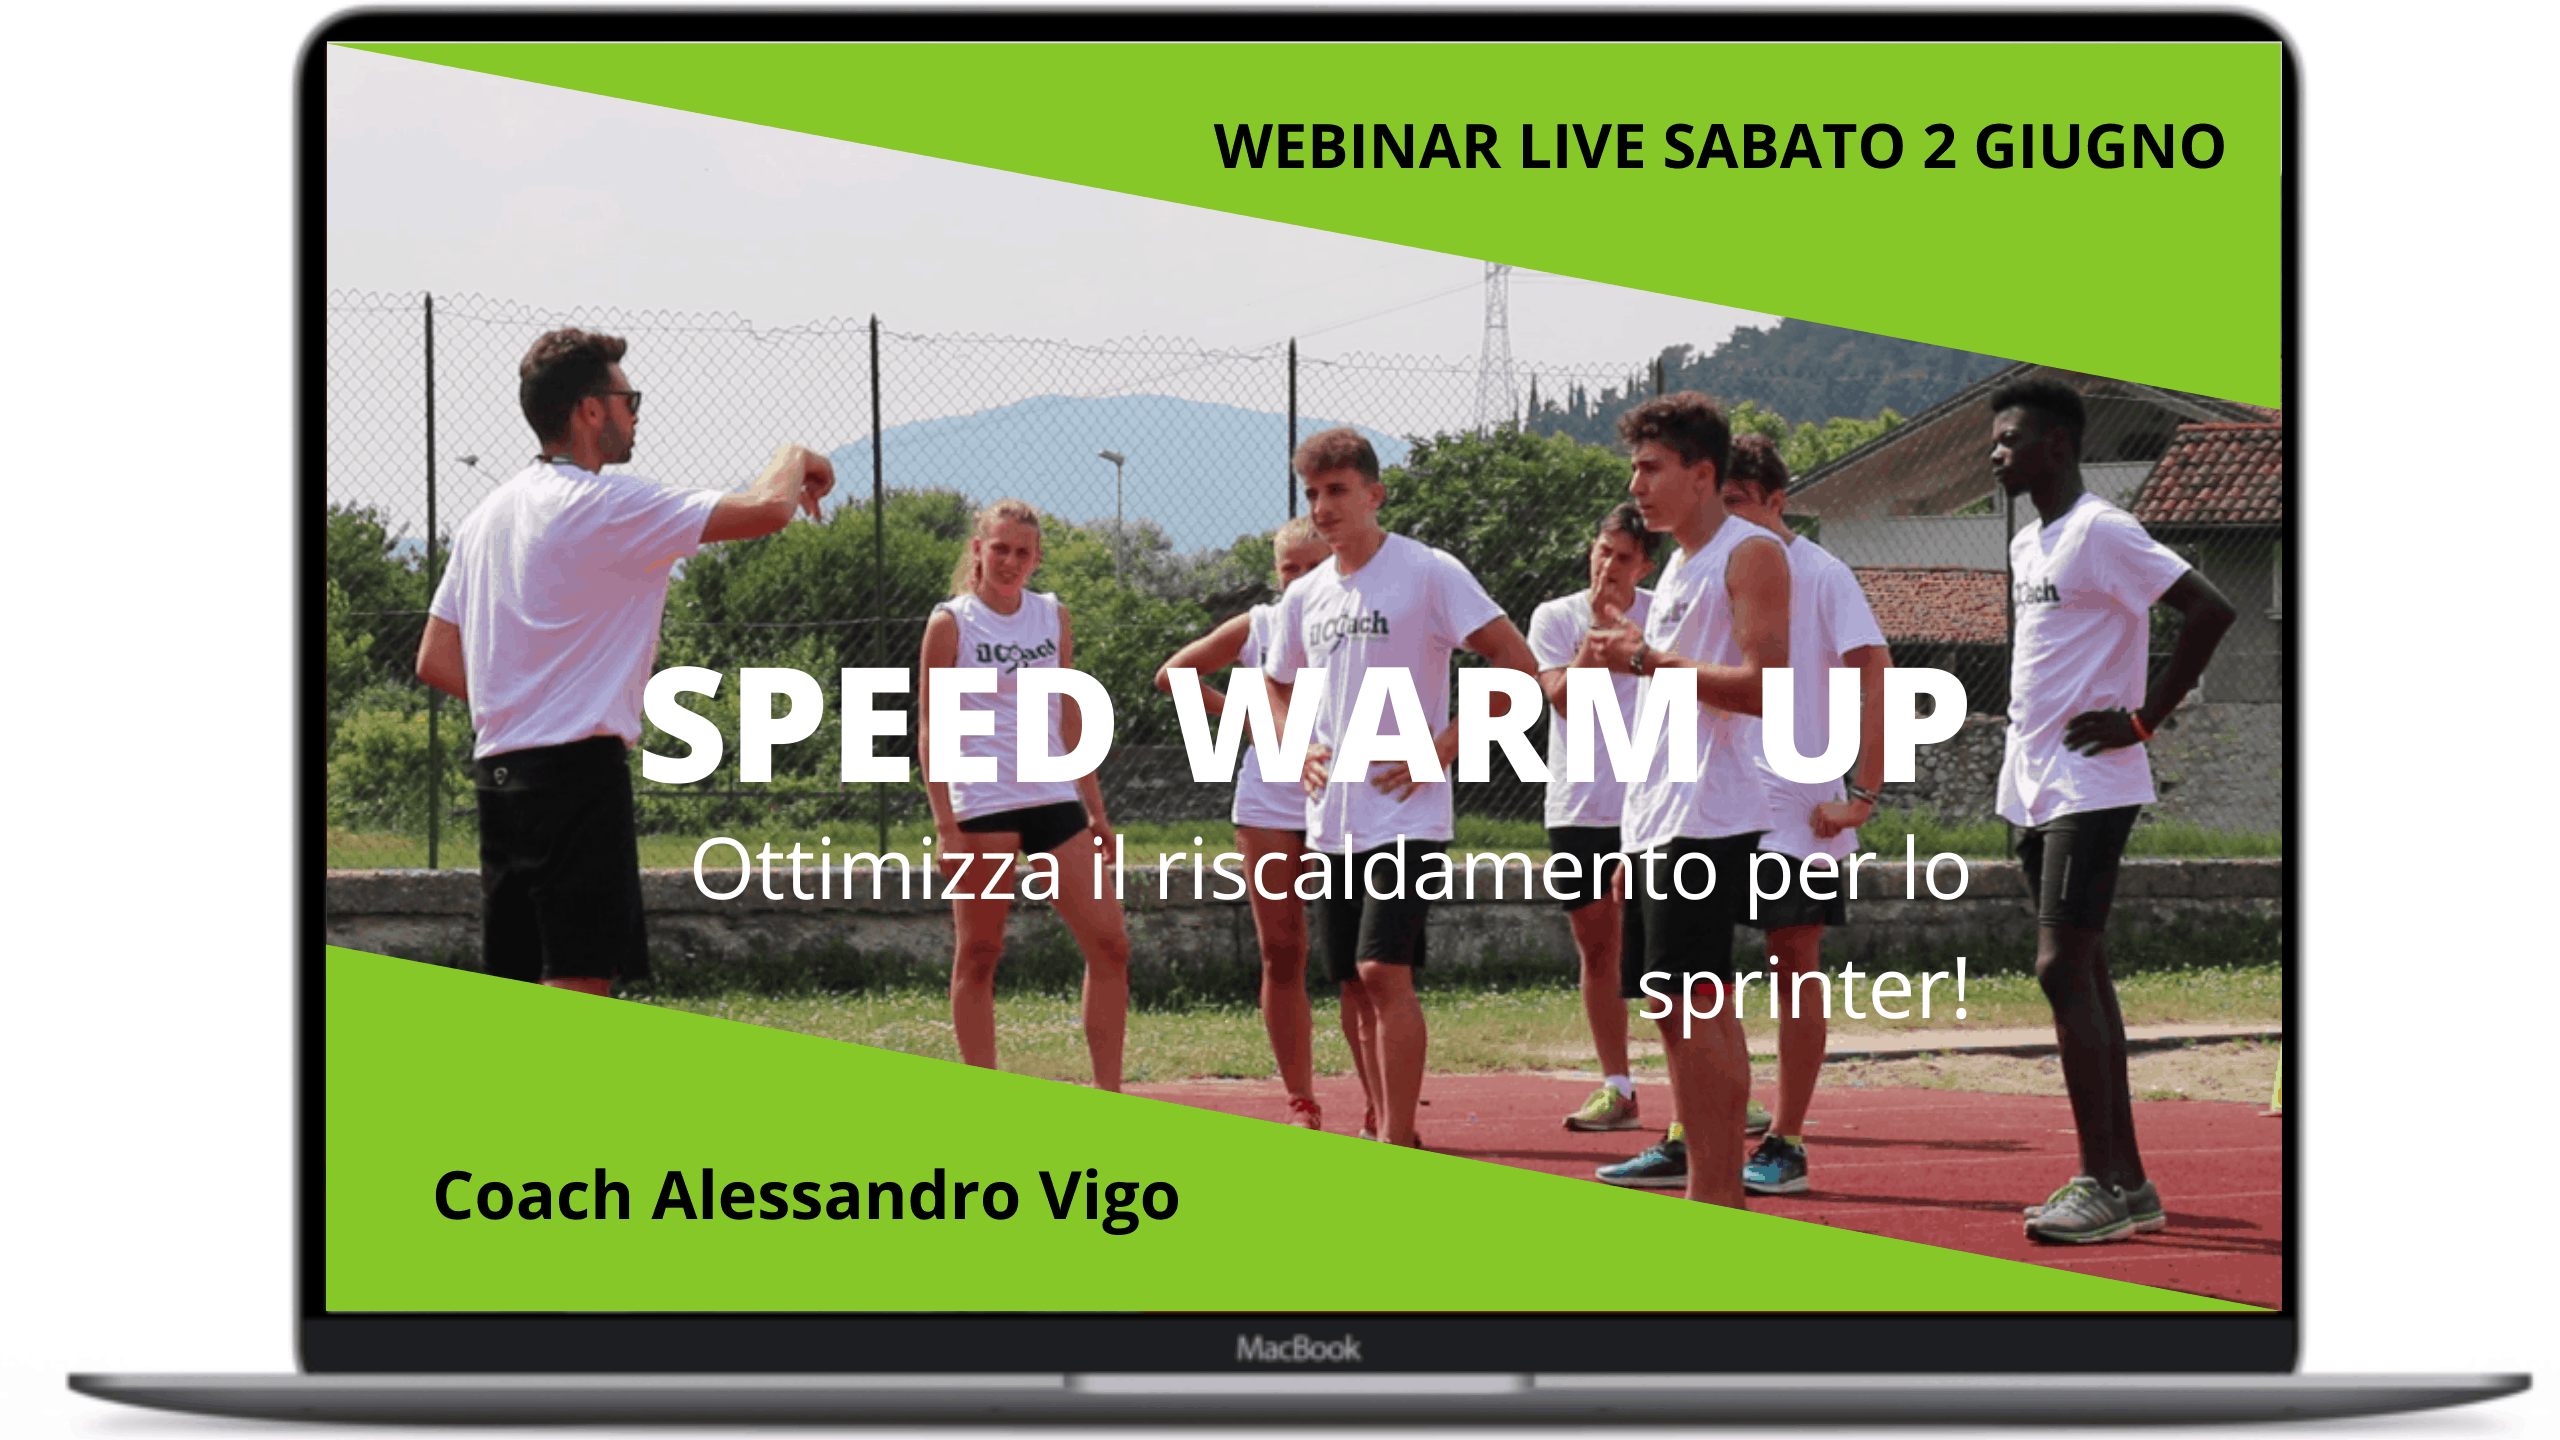 Webinar SPEED WARM UP 2